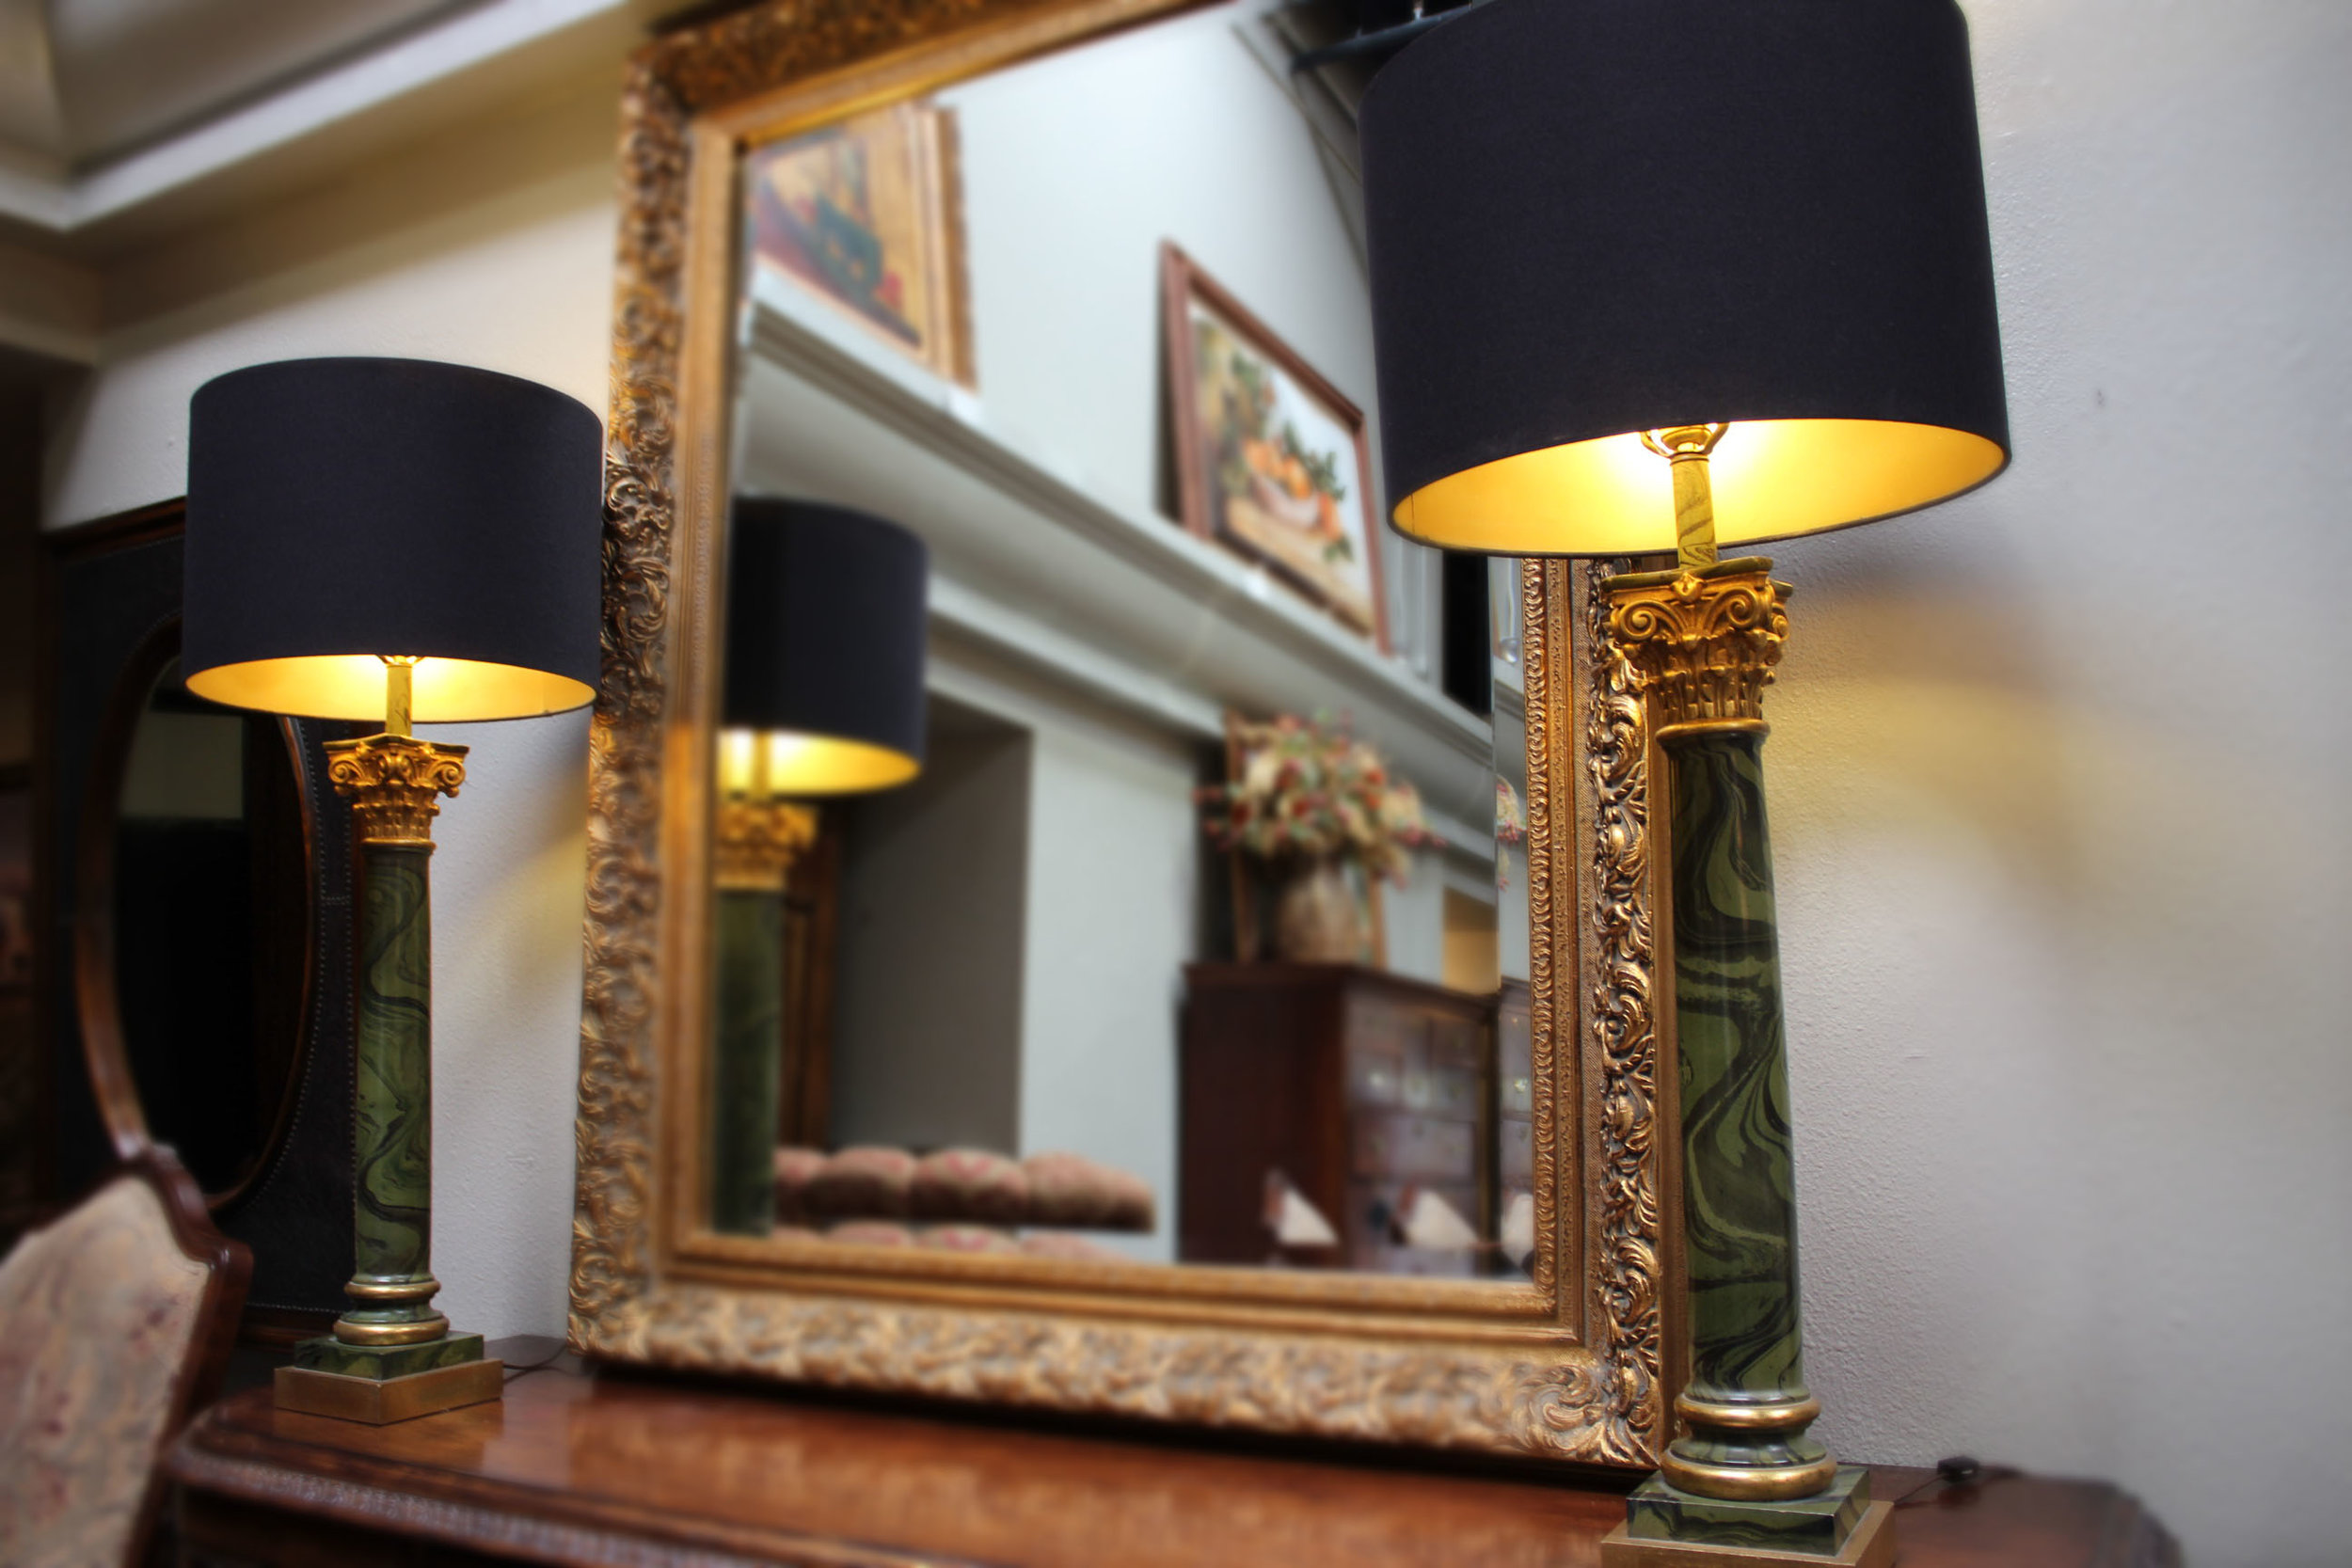 Pair of Green Lamps with Black Shade